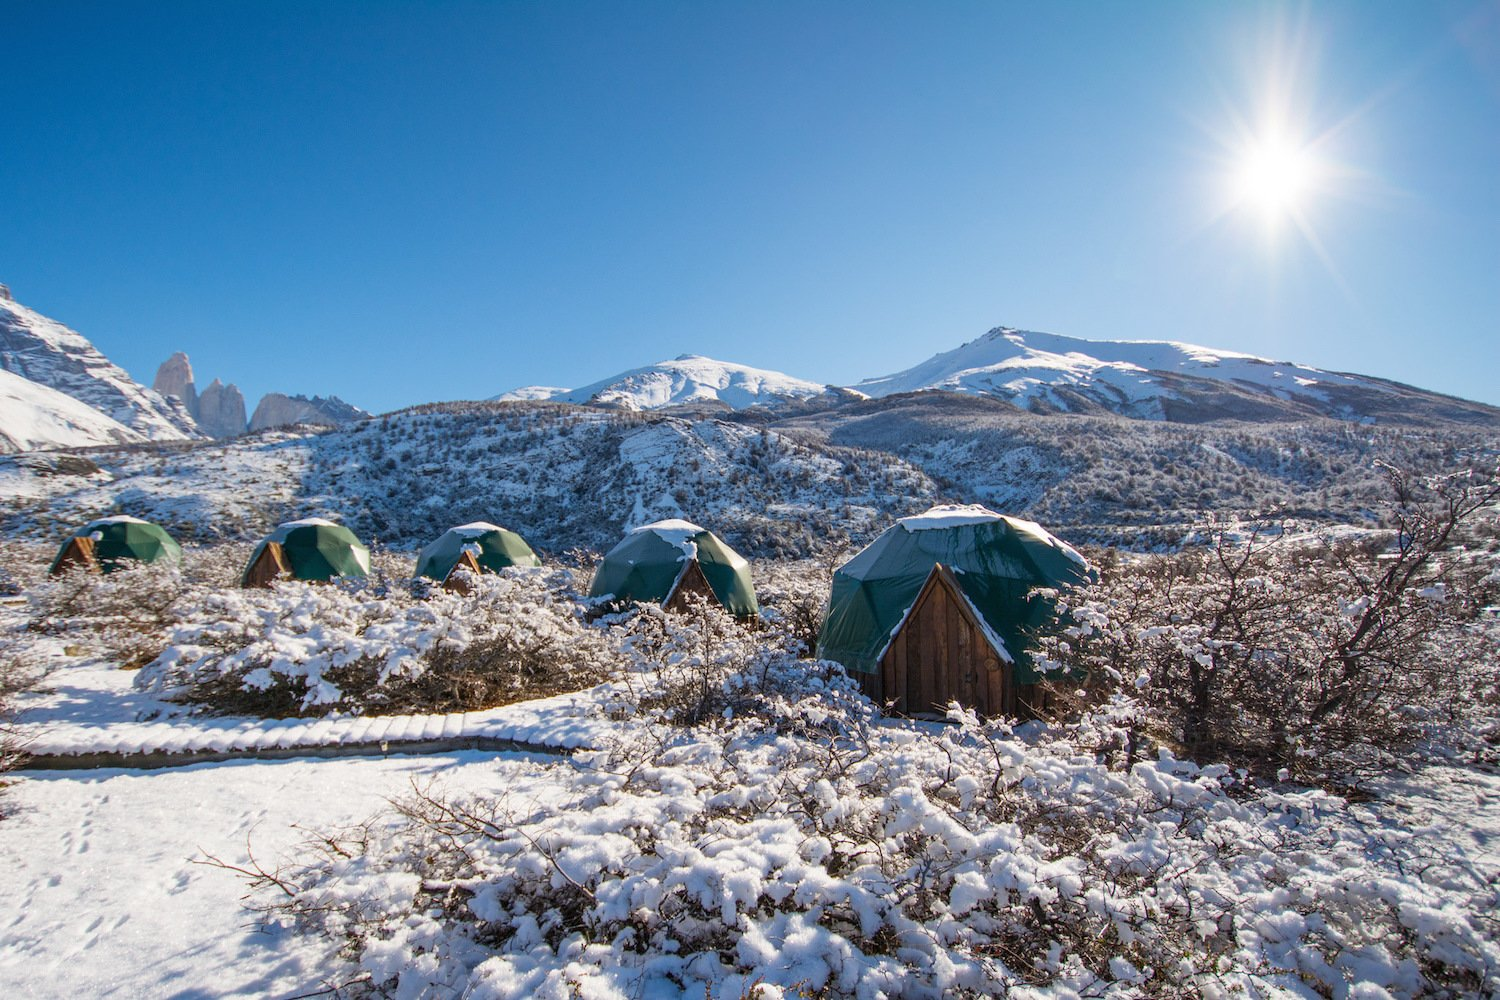 Exterior, Wood Siding Material, and Tent Building Type  Photos from Soak Up the Magic of Patagonia at This Eco-Friendly Geodesic Dome Retreat